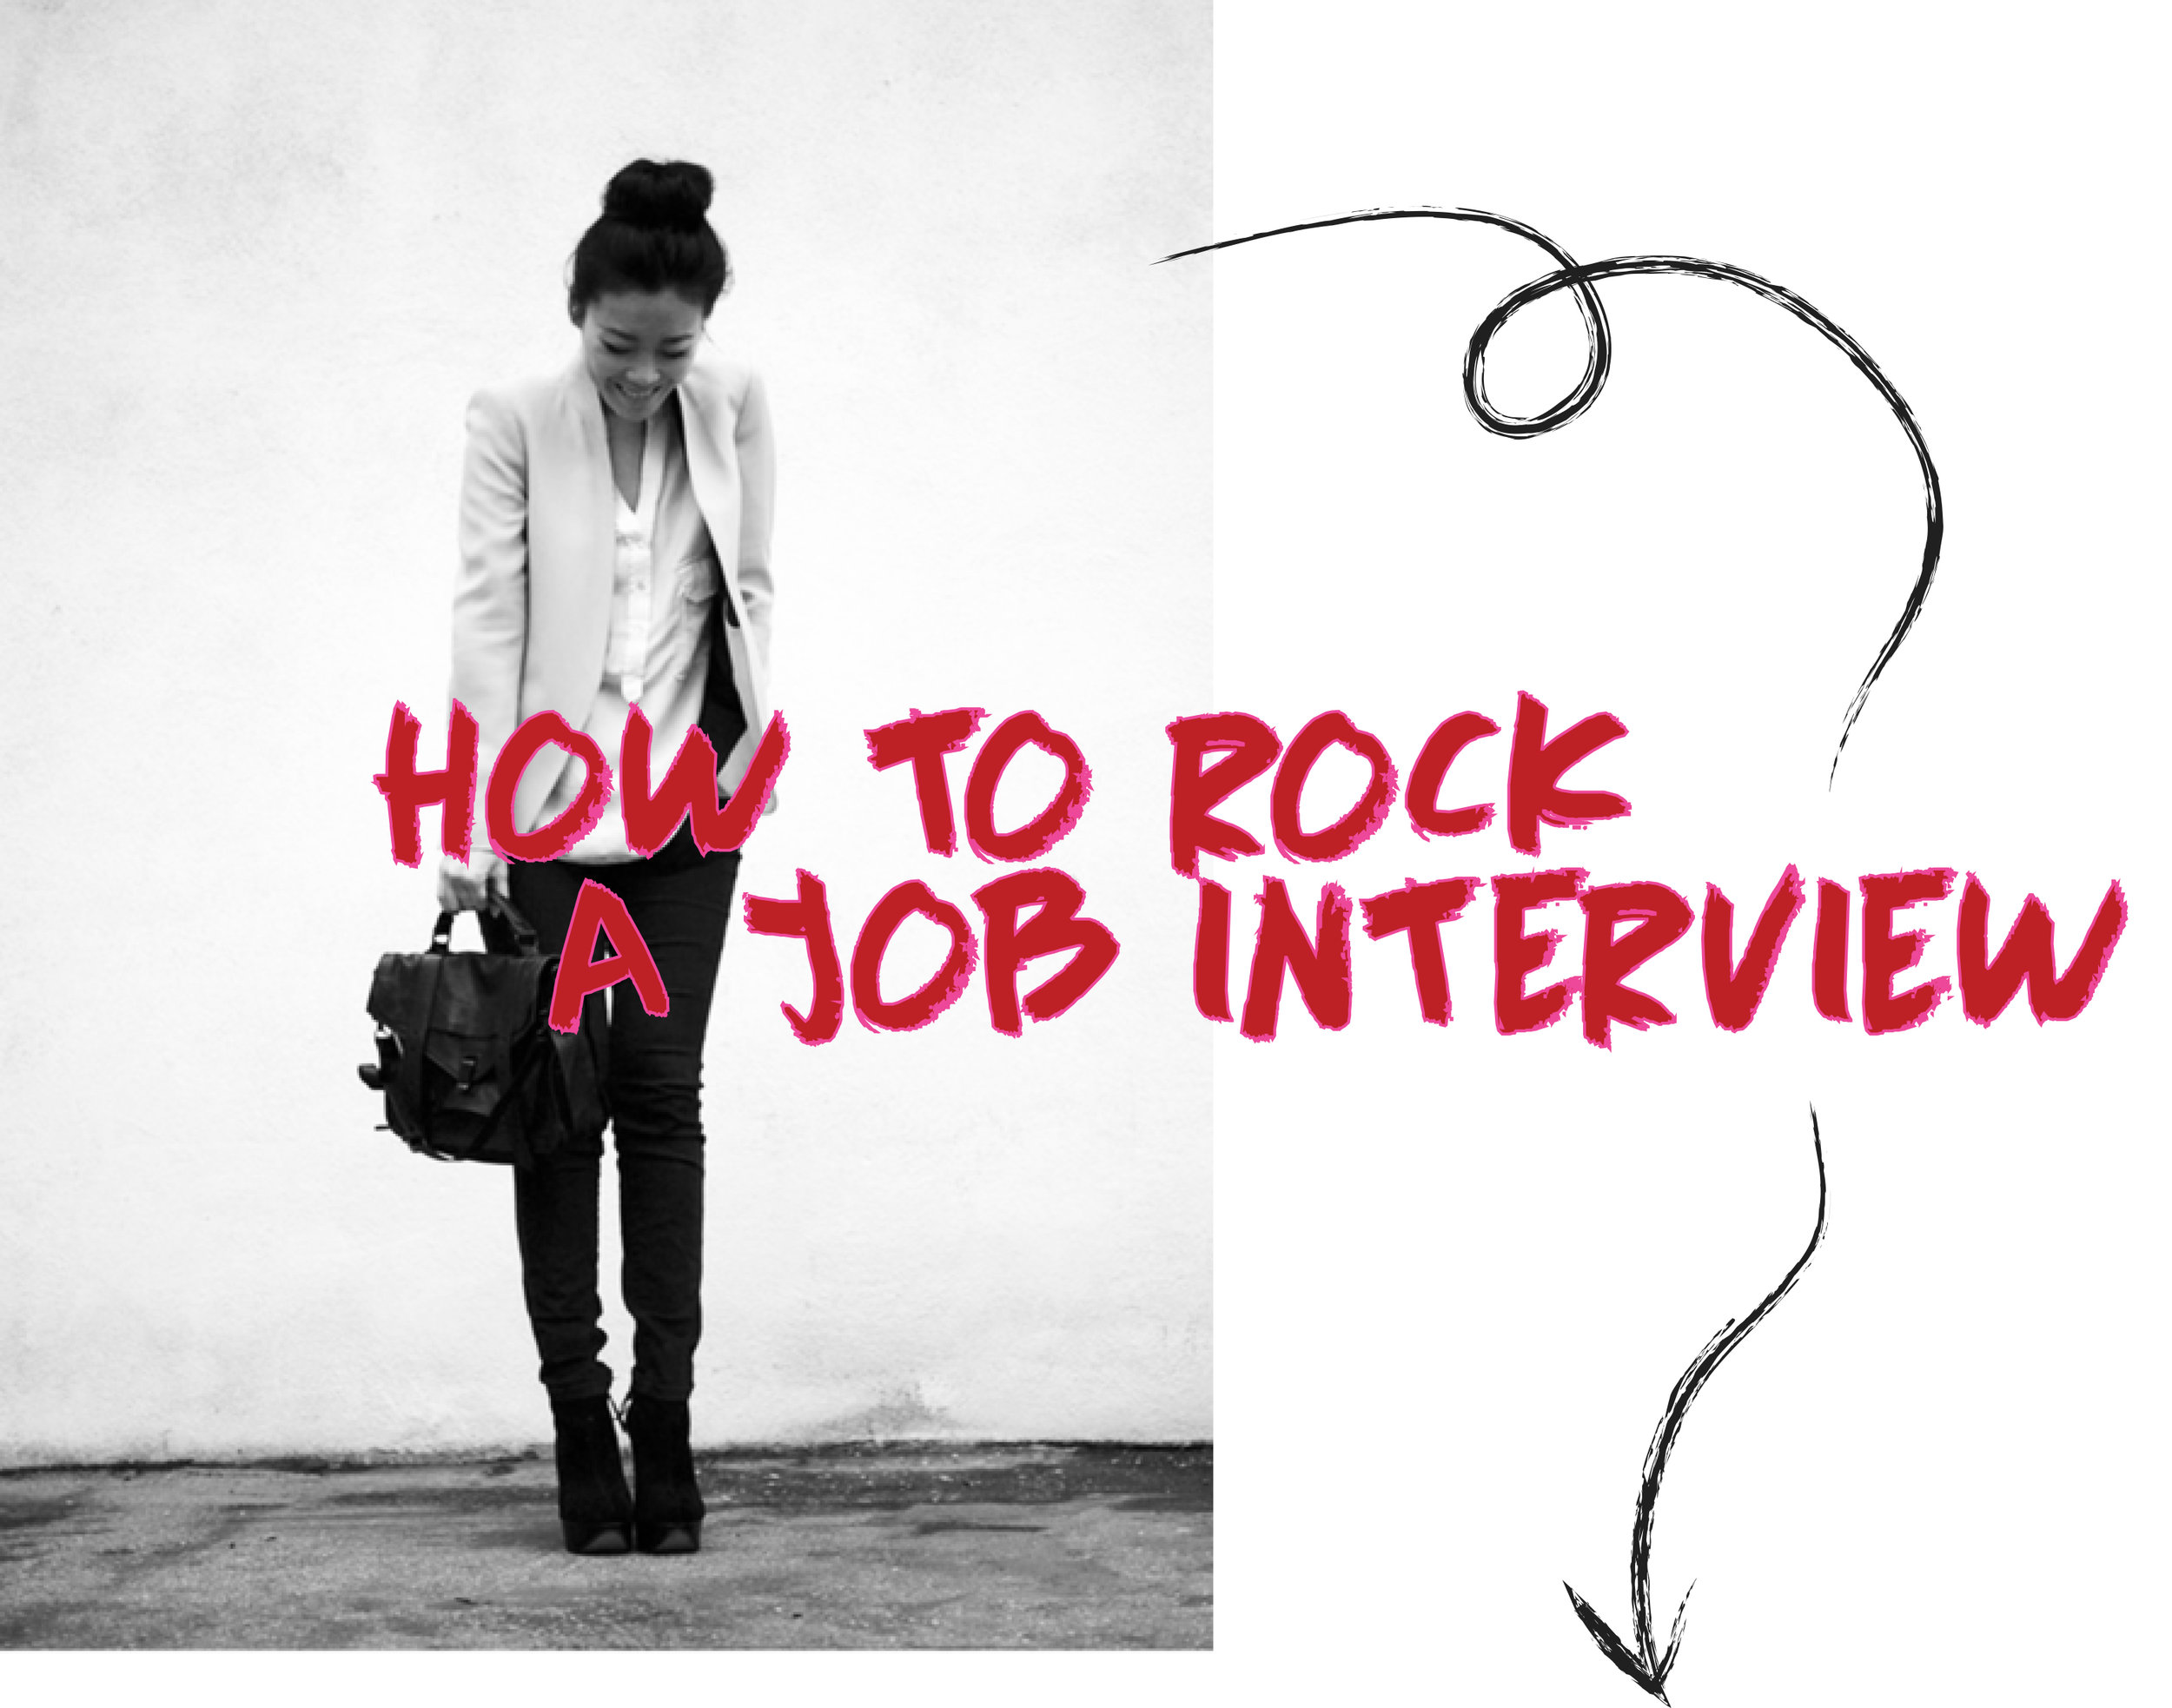 PhotoCredit: https://guestofaguest.com/new-york/fashion/dress-for-the-job-you-want-10-style-tips-for-your-big-interview?slide=10